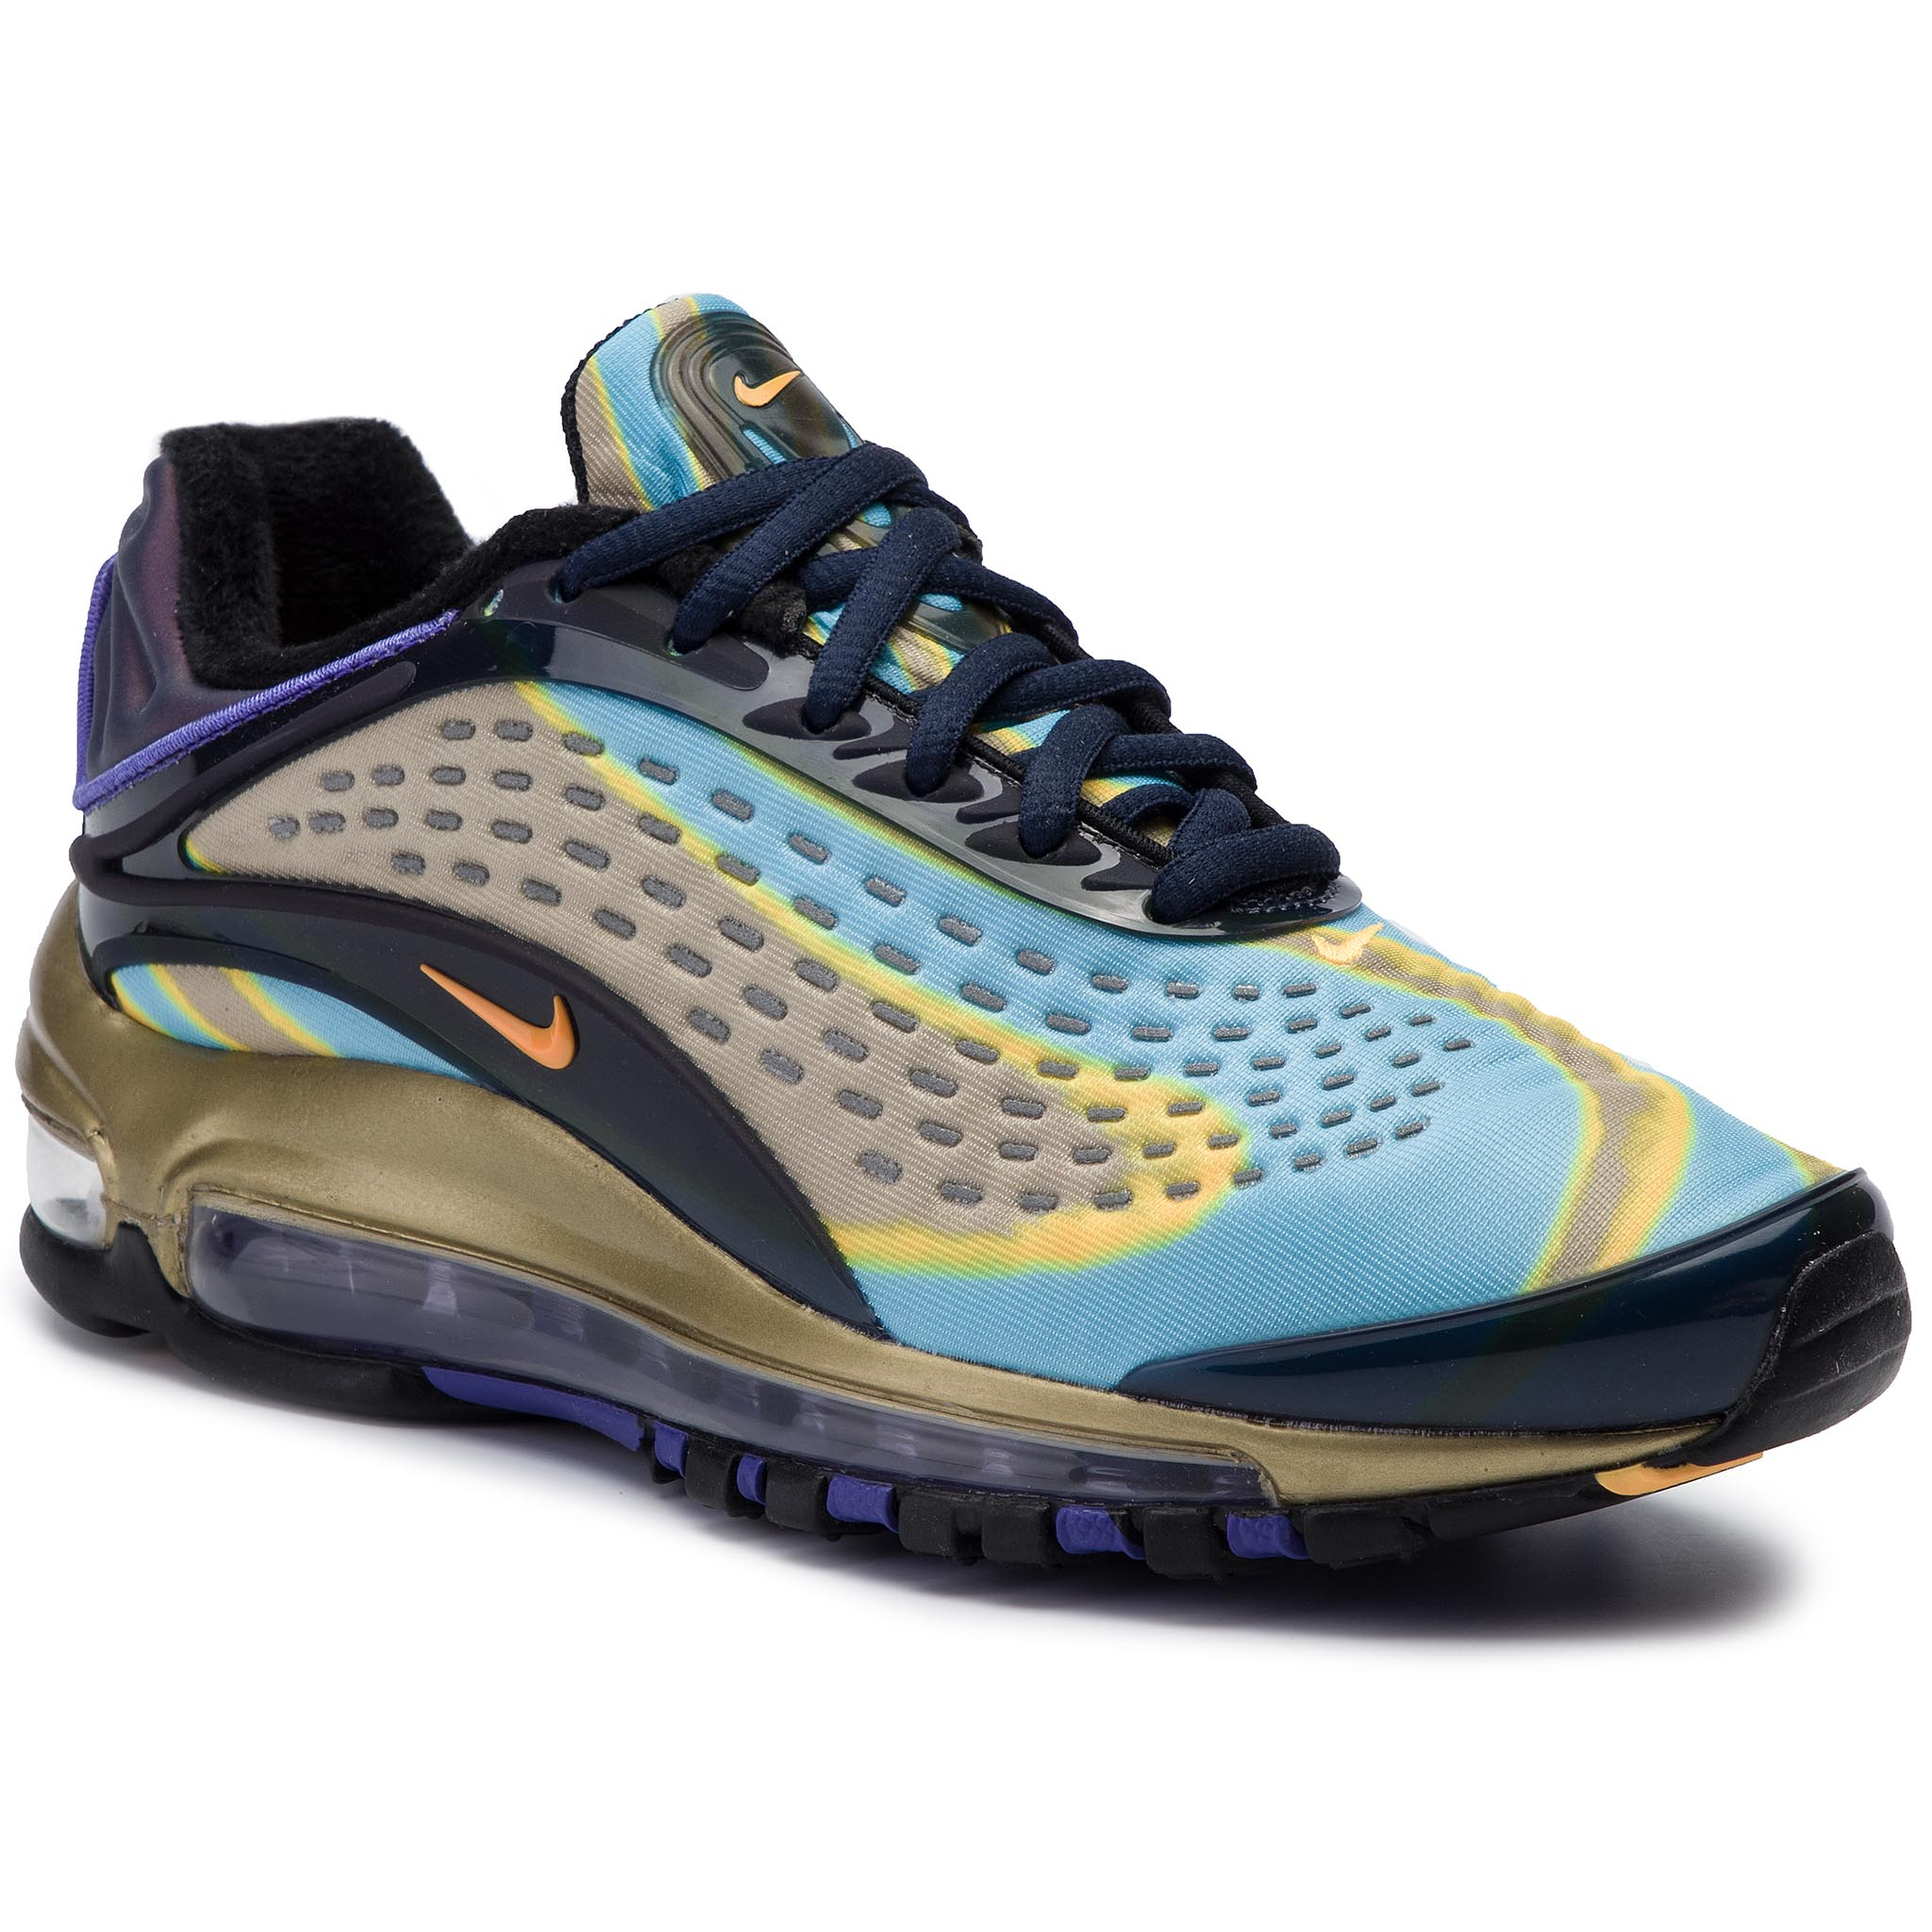 Cipő NIKE Air Max Deluxe AQ1272 400 MIdnight NavyLaser Orange